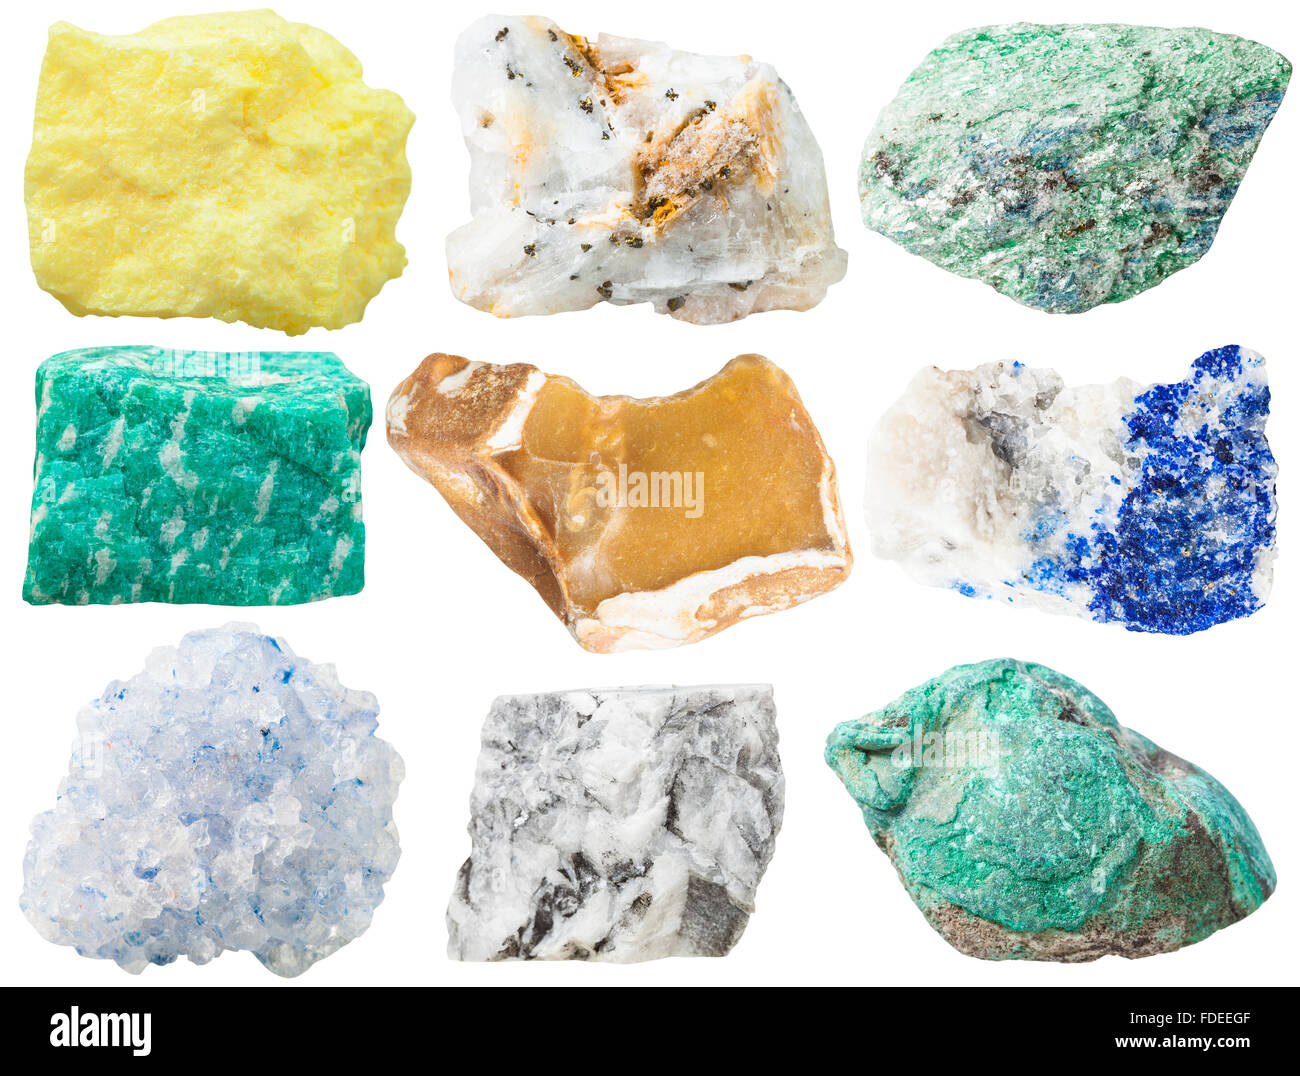 collection of different mineral rocks and stones - sulfur, pyrite crystals in quartzite, Fuchsite, amazonite, flint, - Stock Image